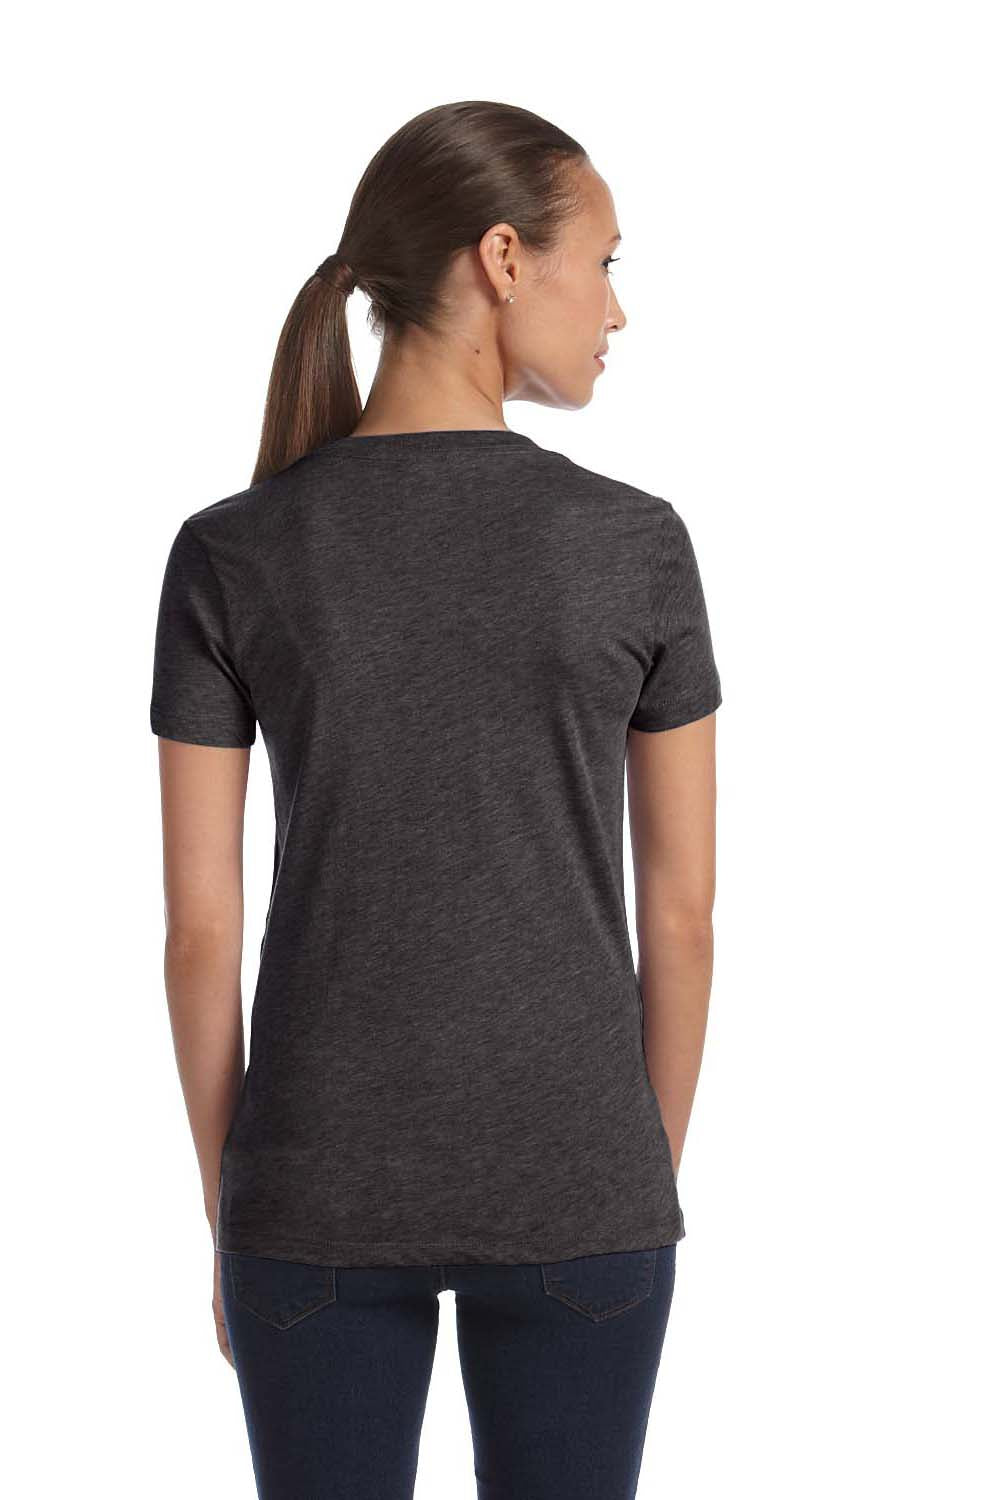 Bella + Canvas 8435 Womens Short Sleeve Deep V-Neck T-Shirt Heather Charcoal Grey Back